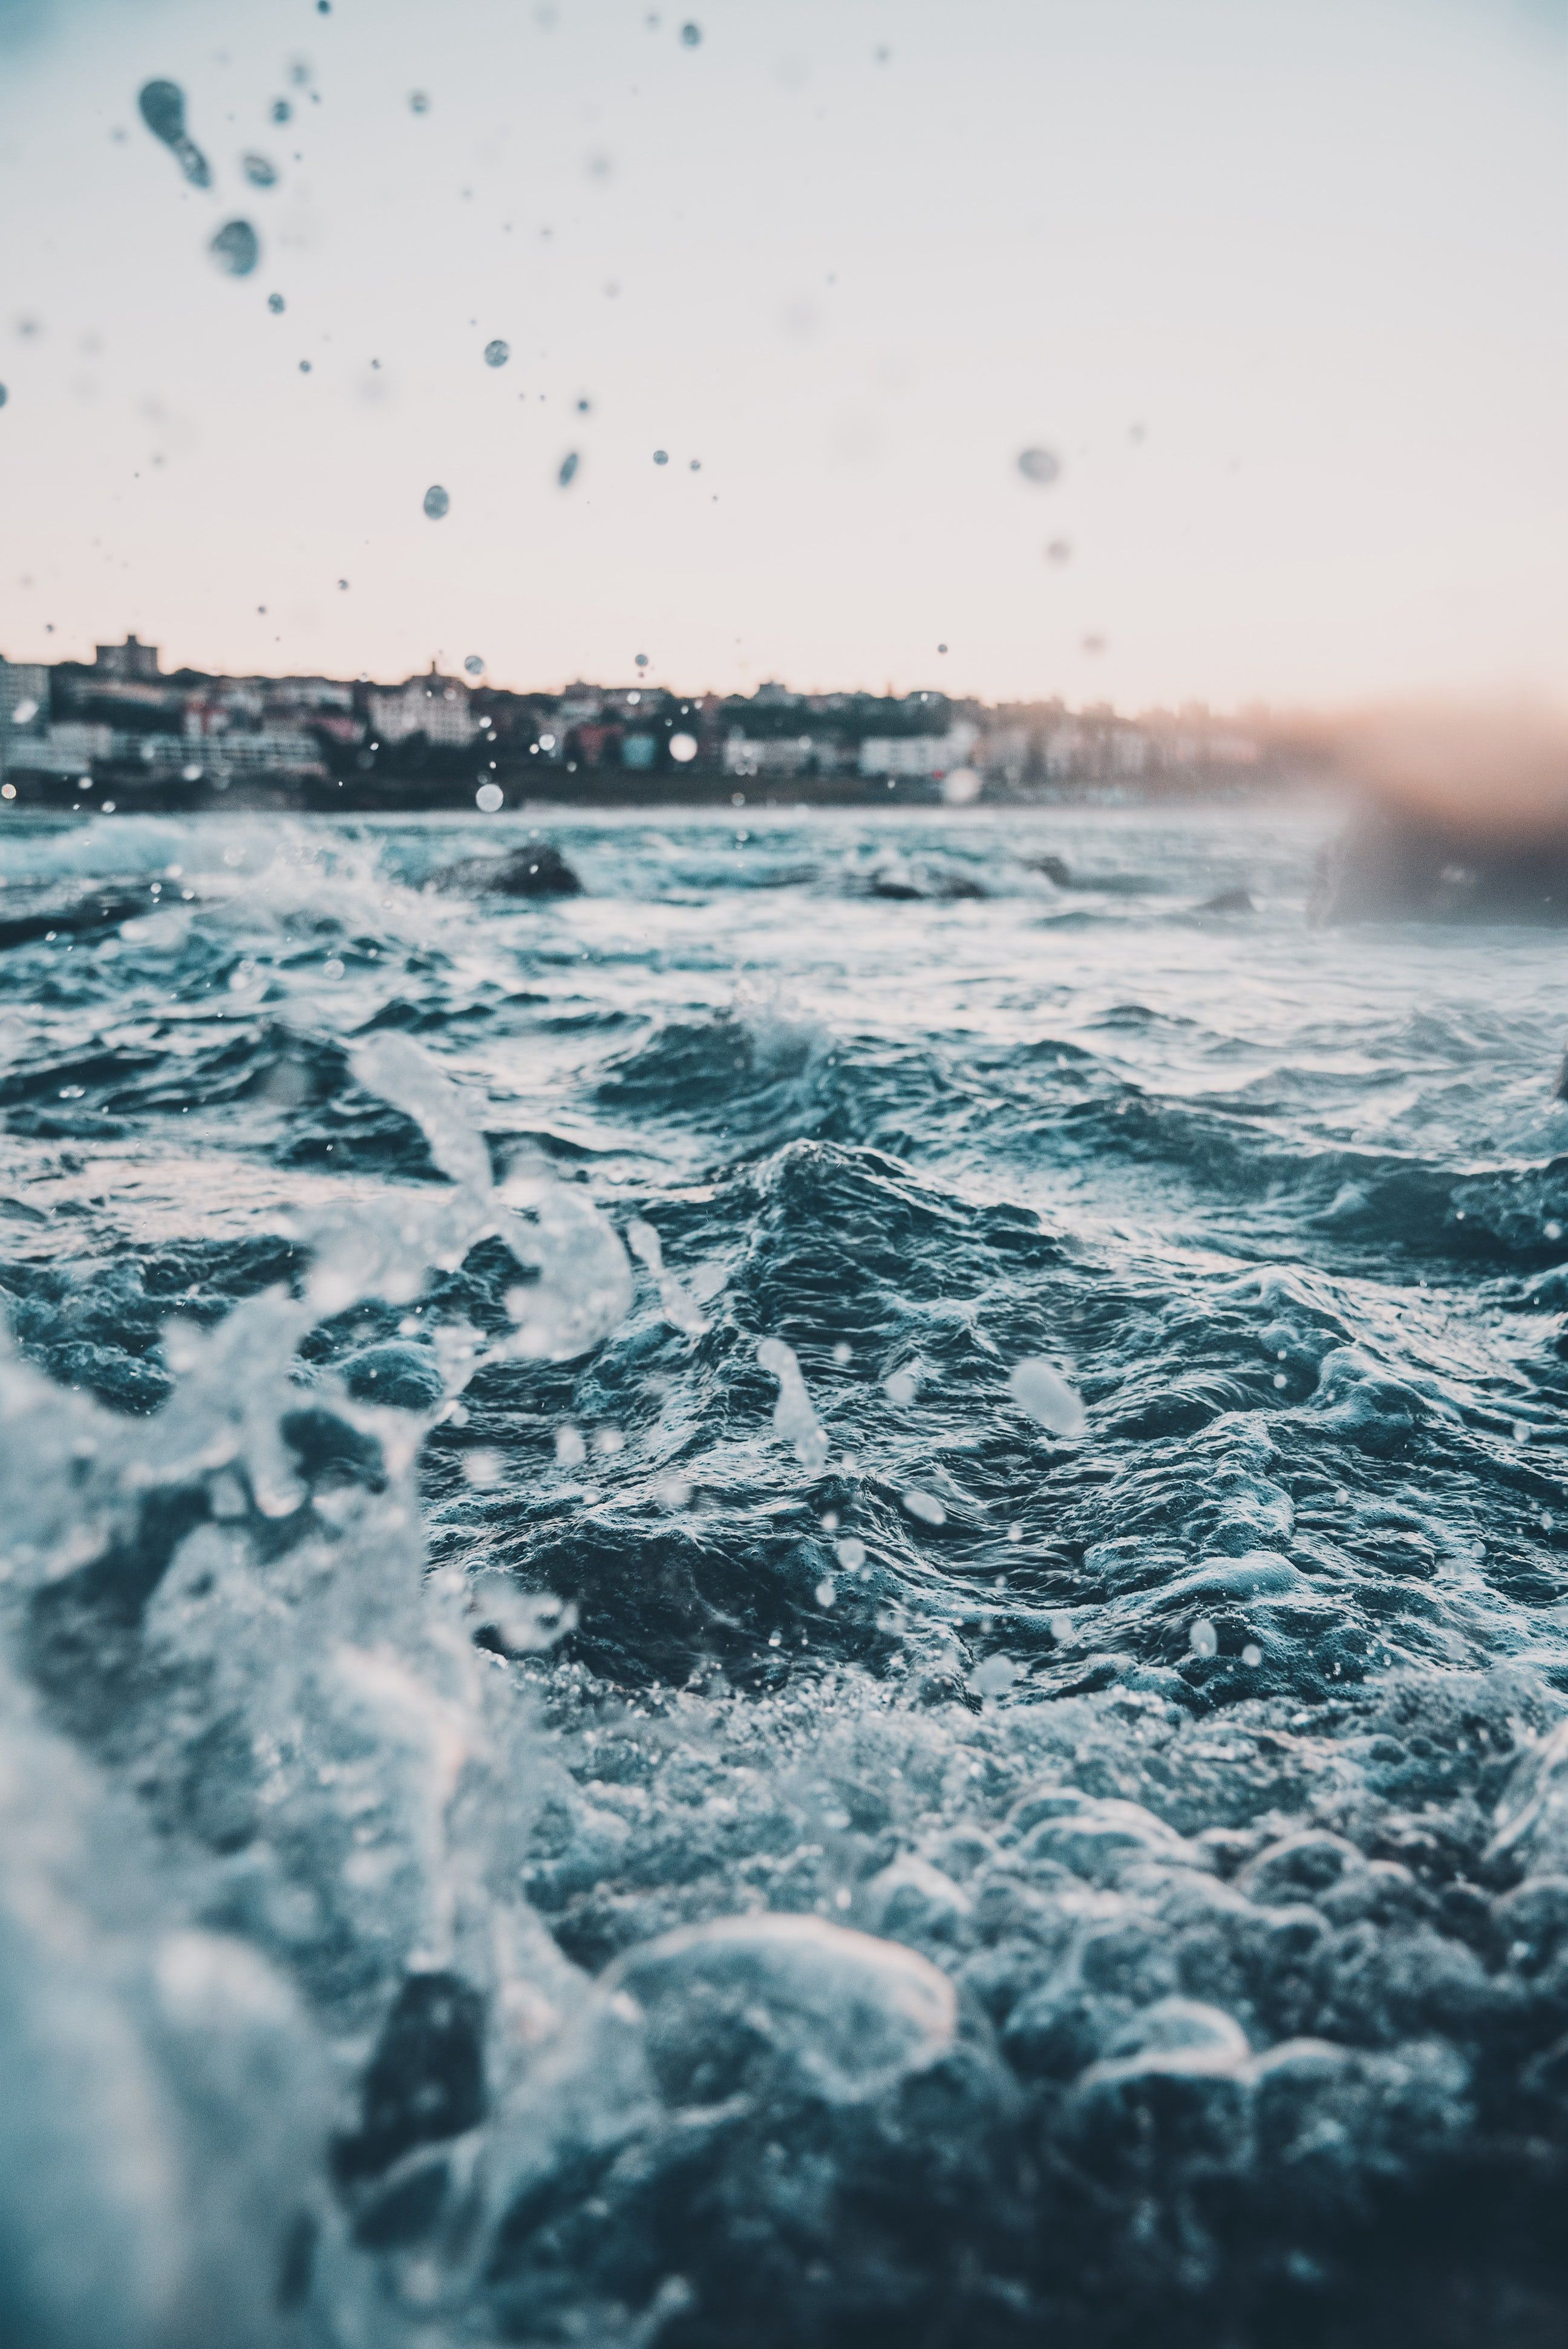 Pin By Elizabeth Stephenson On Photography Ocean Wallpaper Ocean Vibes Ocean Photography